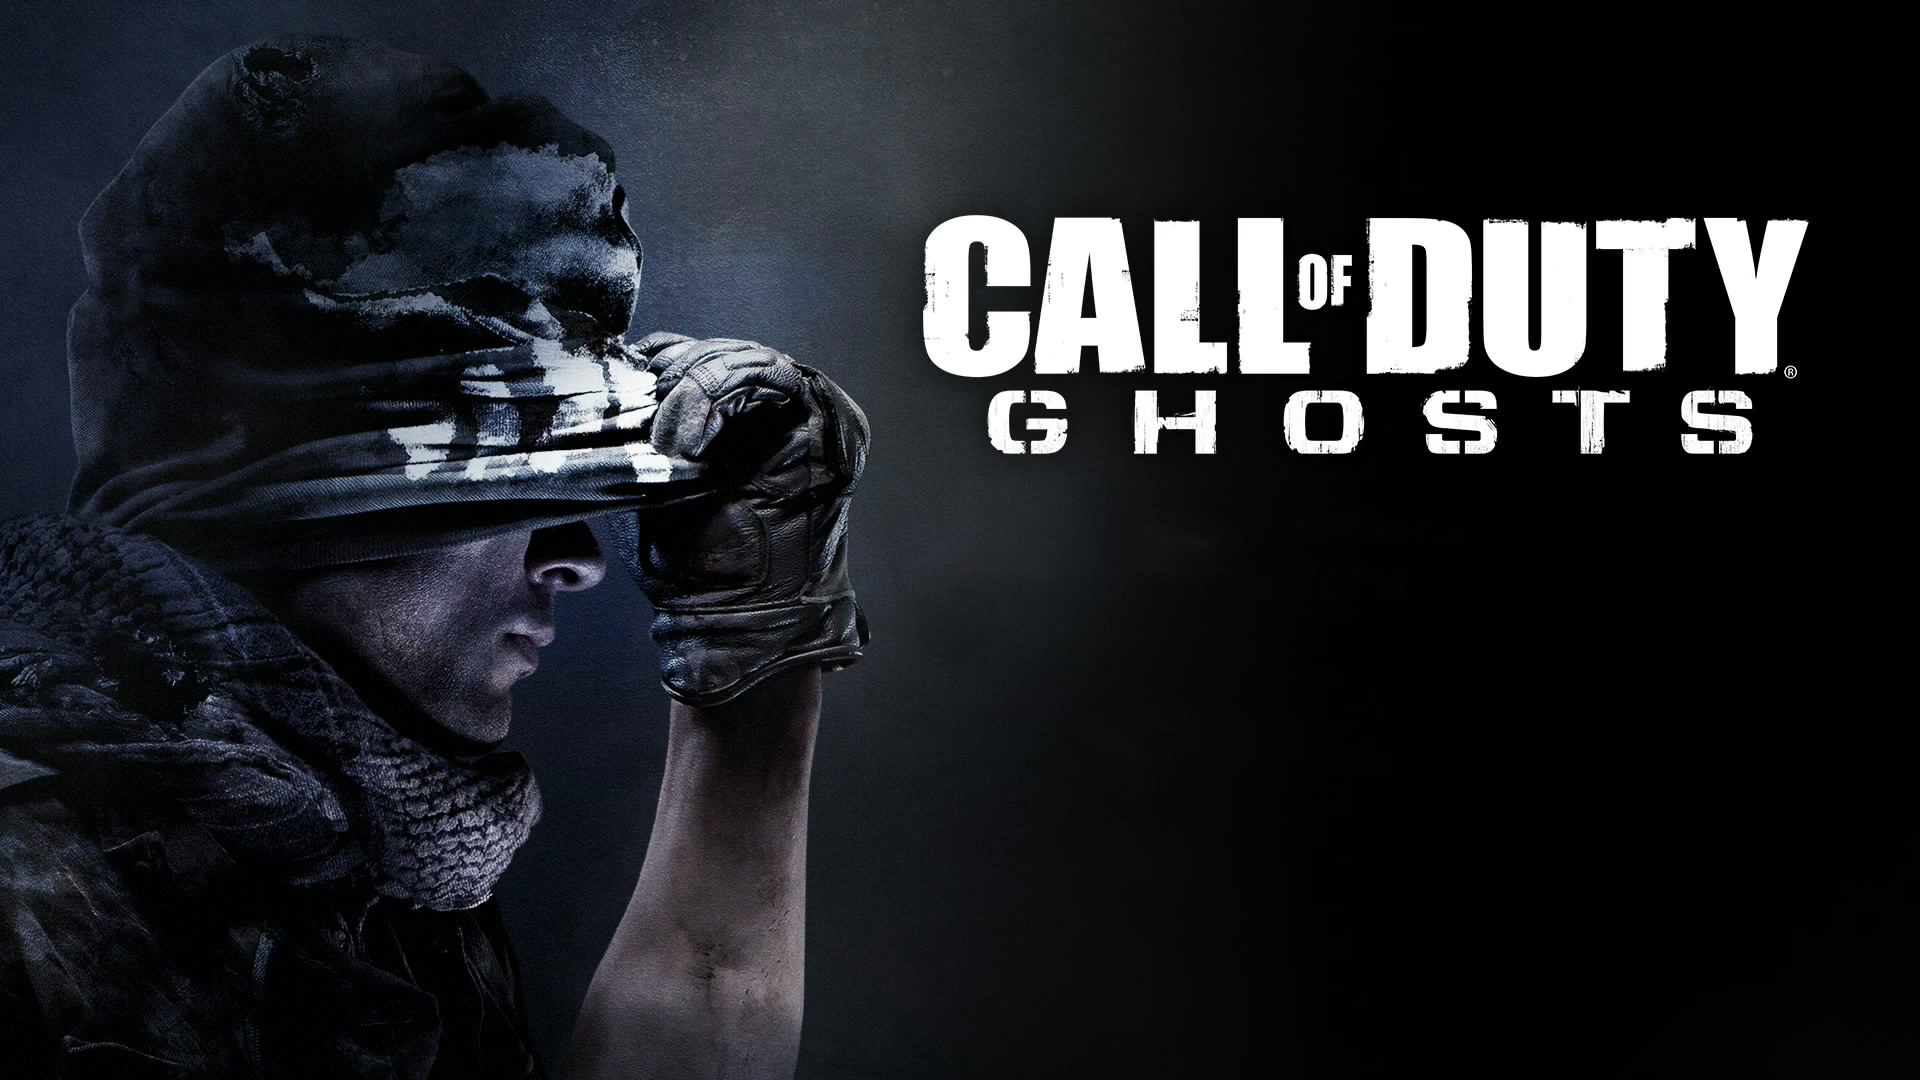 Call of Duty Ghosts Wallpapers HD Wallpapers 1920x1080